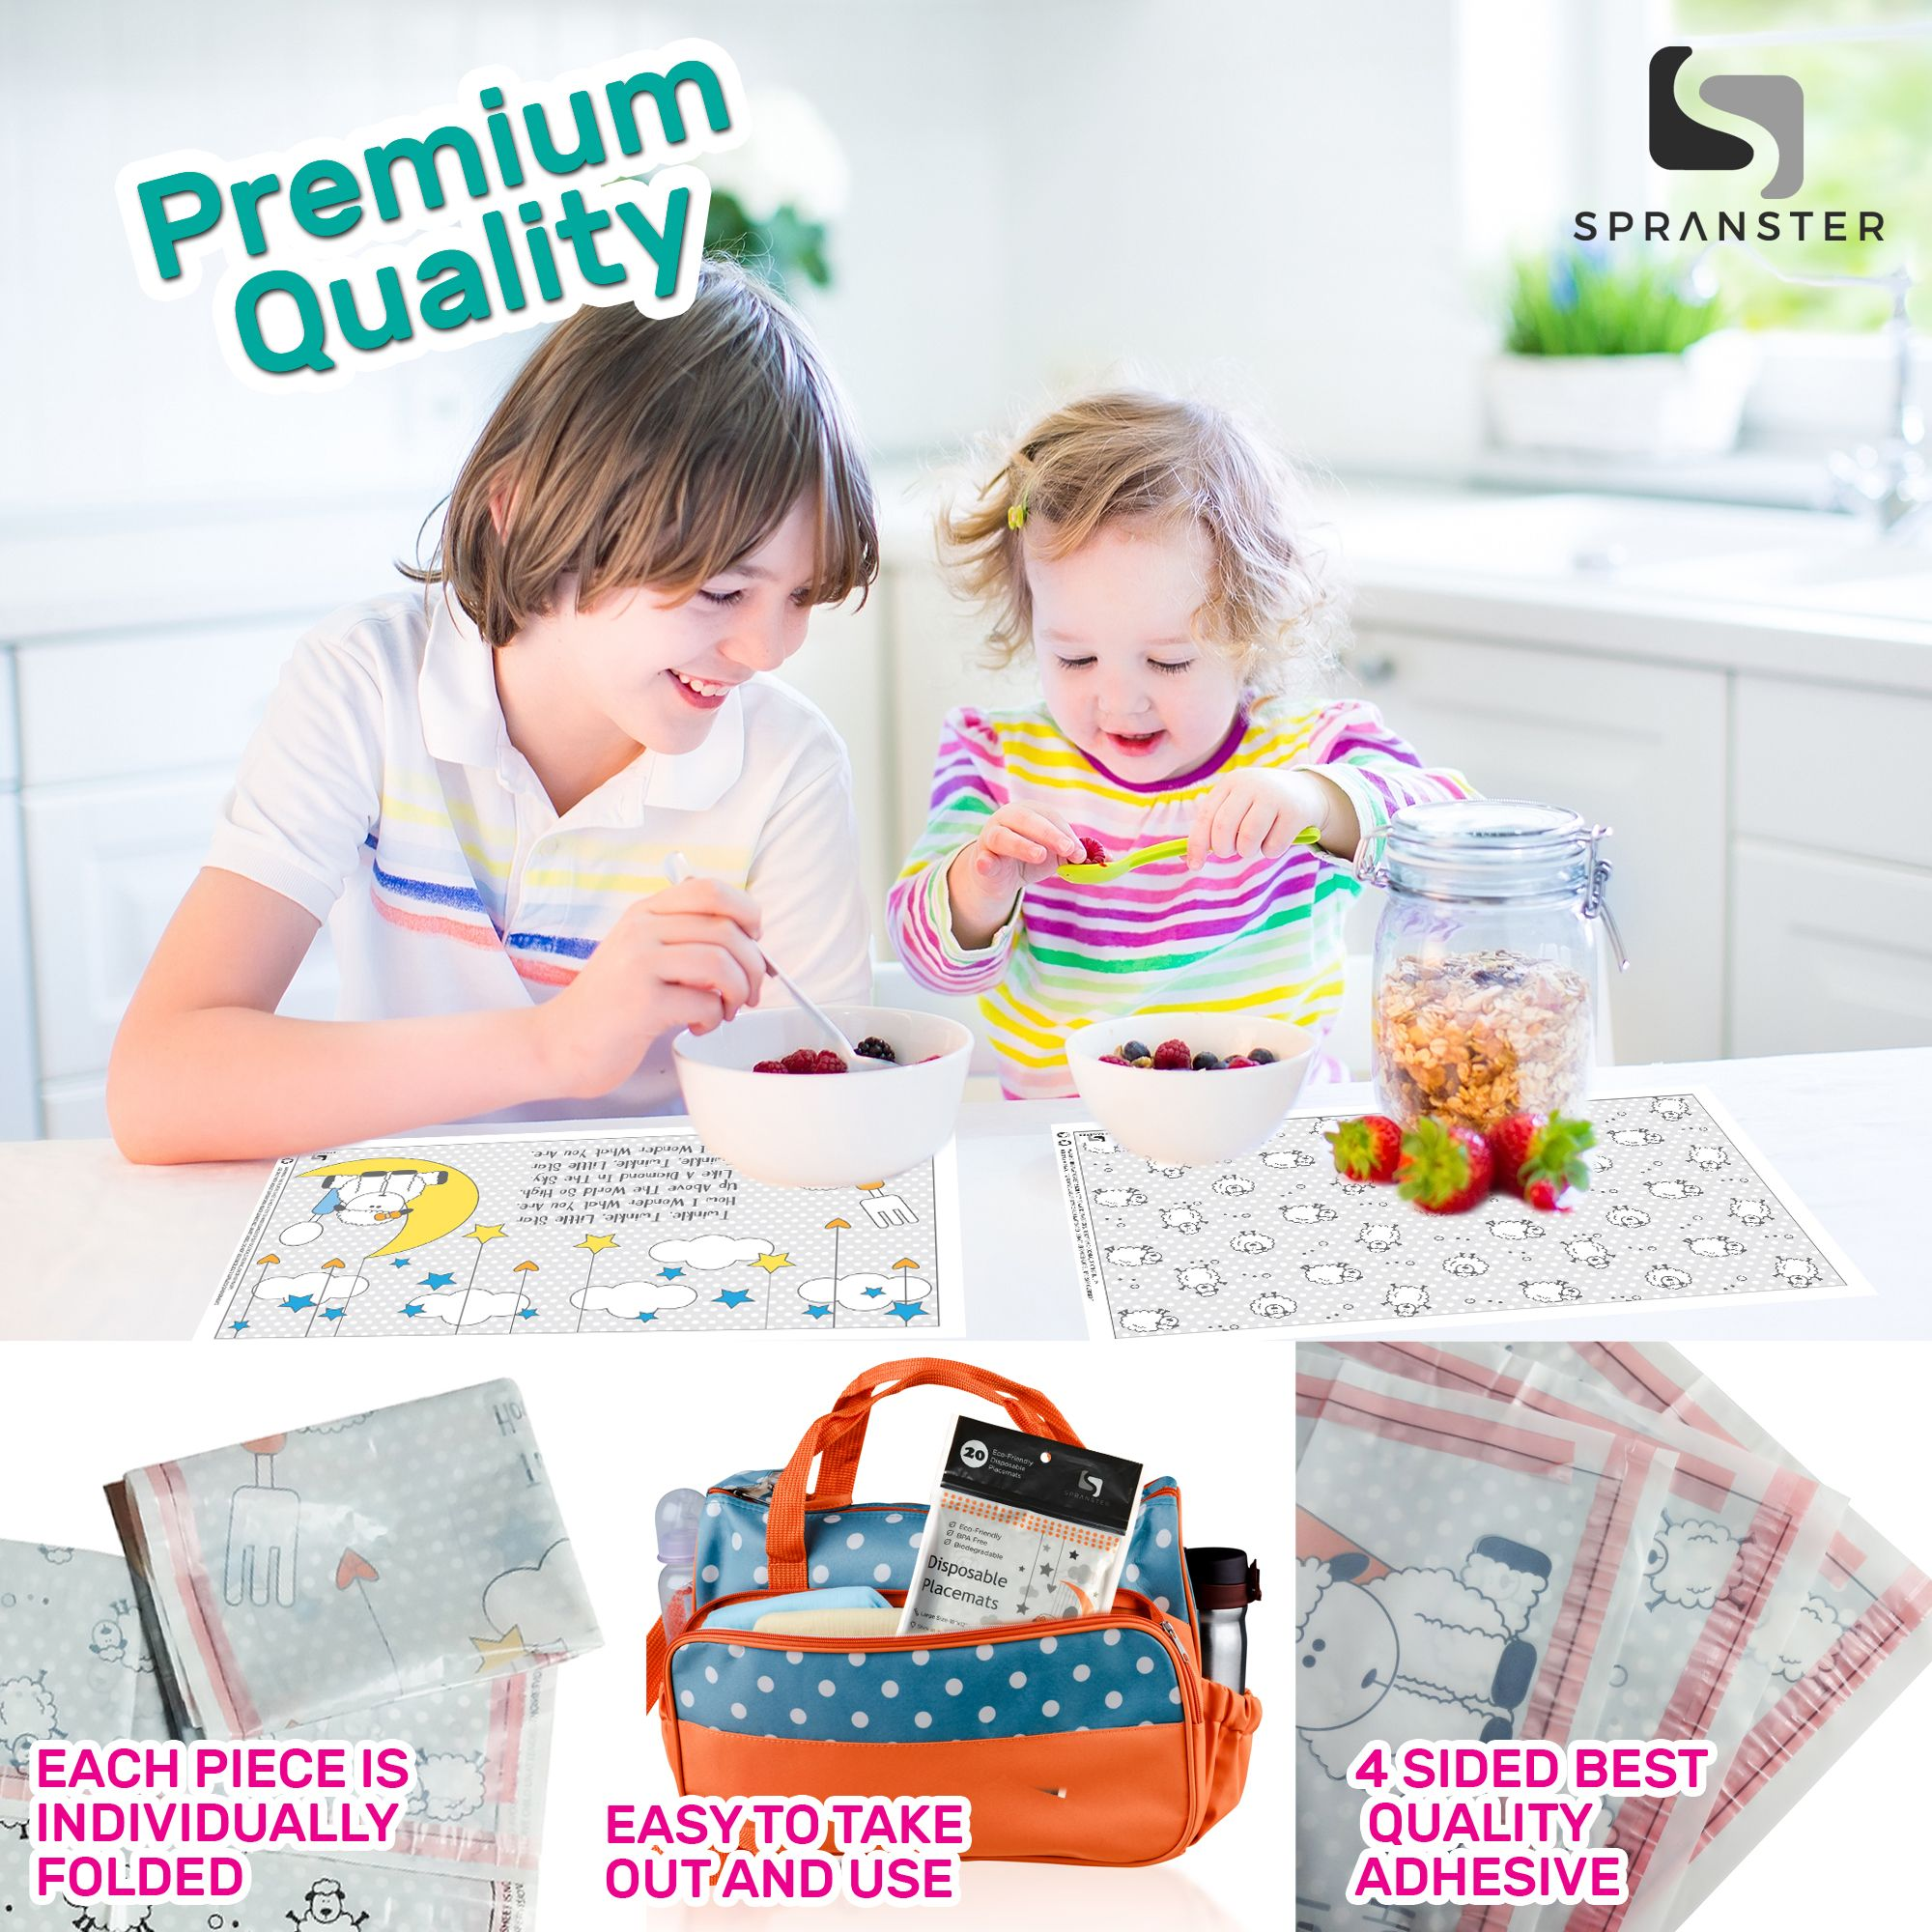 Spranster Disposable Placemats Individually Folded Easy To Use 4 Sided Adhesive Premium Quality Mats Grab It Now At Amazon Placemats Disposable Kids